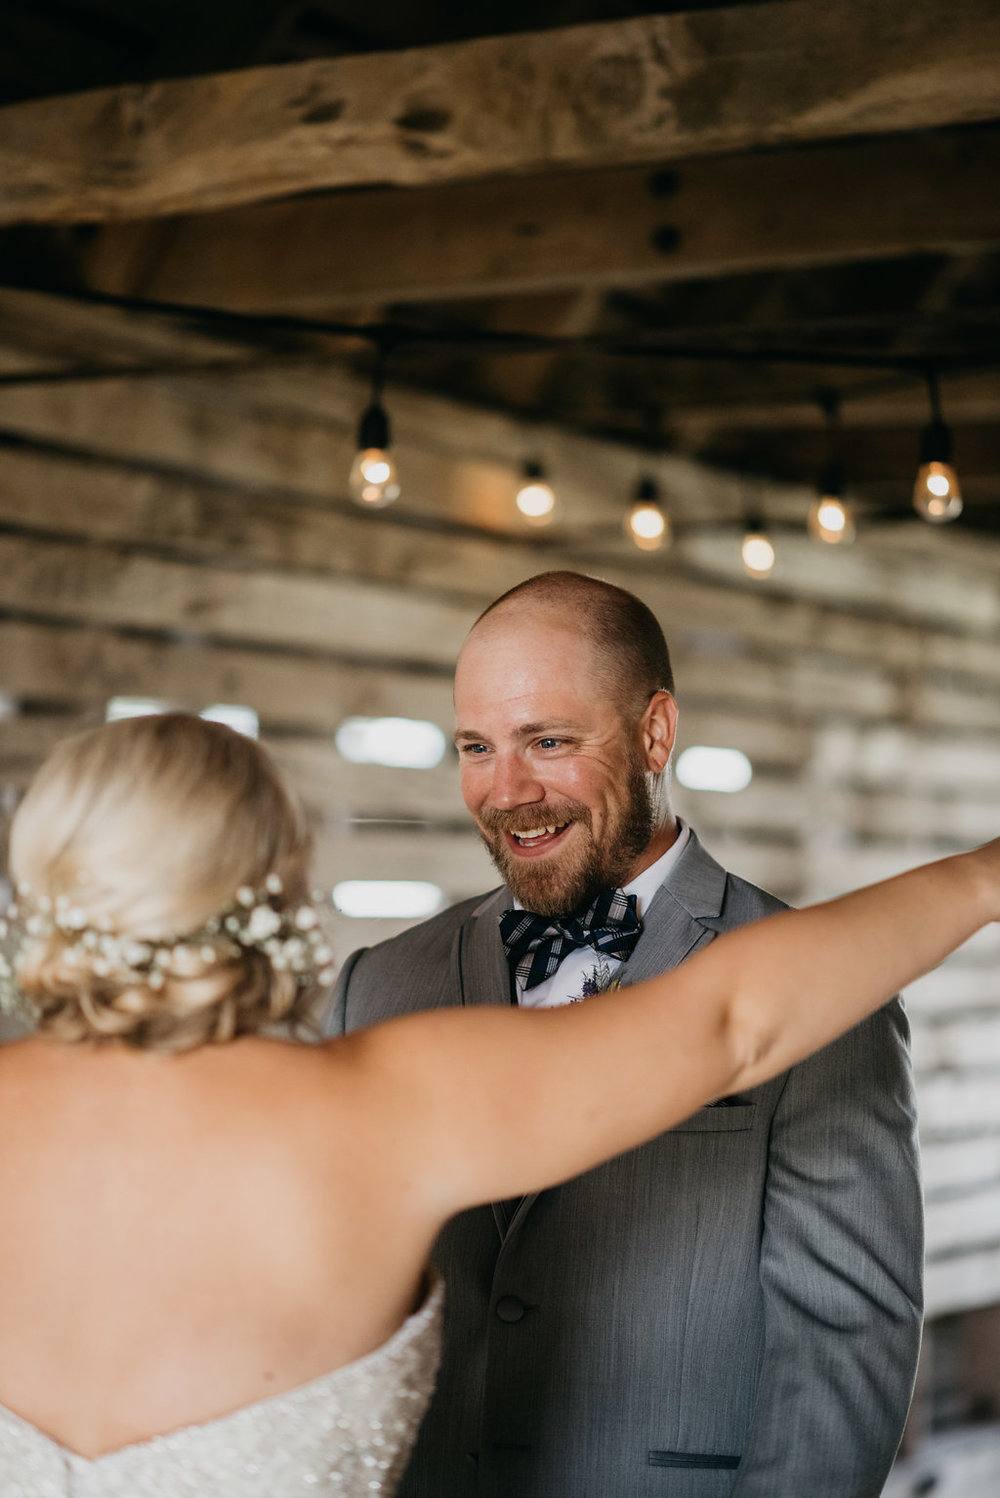 MPLS wedding photographer 52.jpg